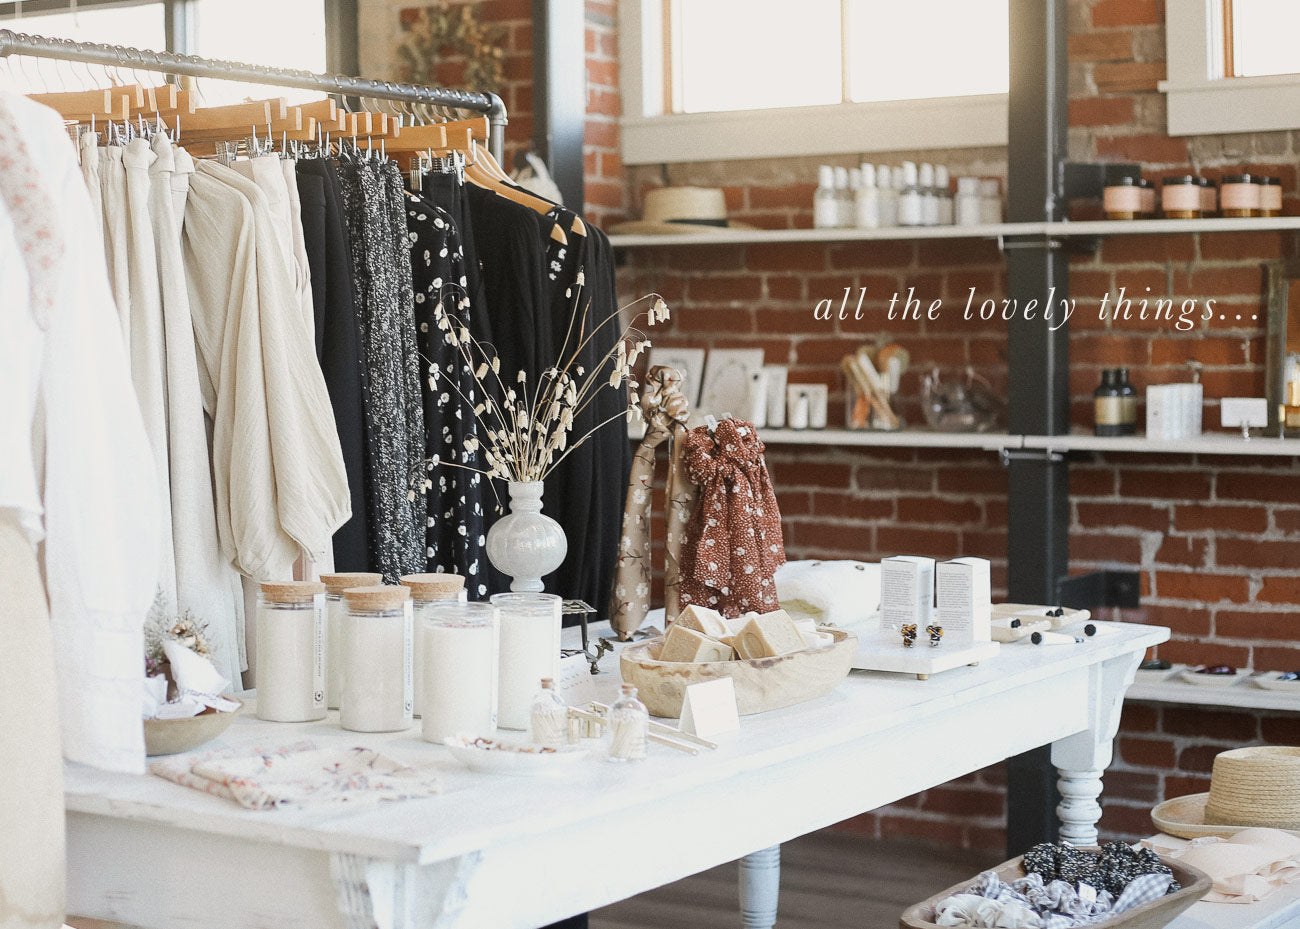 Portland Women's Clothing Boutique / Adored Vintage / Women Owned and Operated Portland Shop